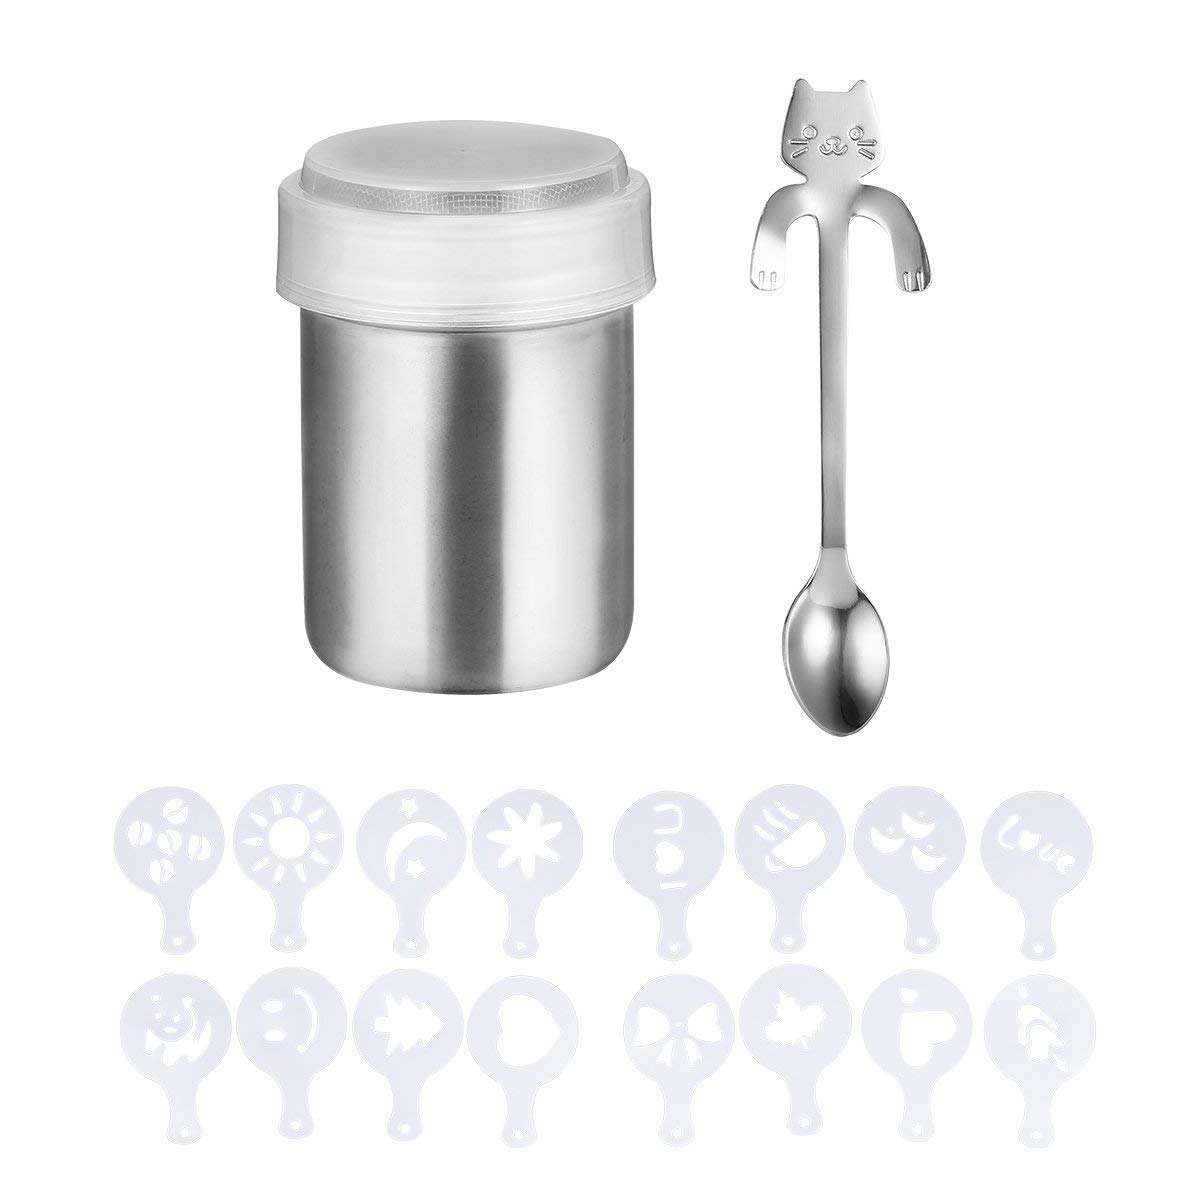 Panlom-7oz-Stainless-Steel-Chocolate-Kitchen-Craft-Shaker-Icing-Sugar-Salt-Cocoa-Flour-Cappuccino-Mince-Pies-Pancakes-Coffee-Sifter-16-x-Cappuccino-Coffee-Stencils-Mini-Cat-Coffee-Spoon